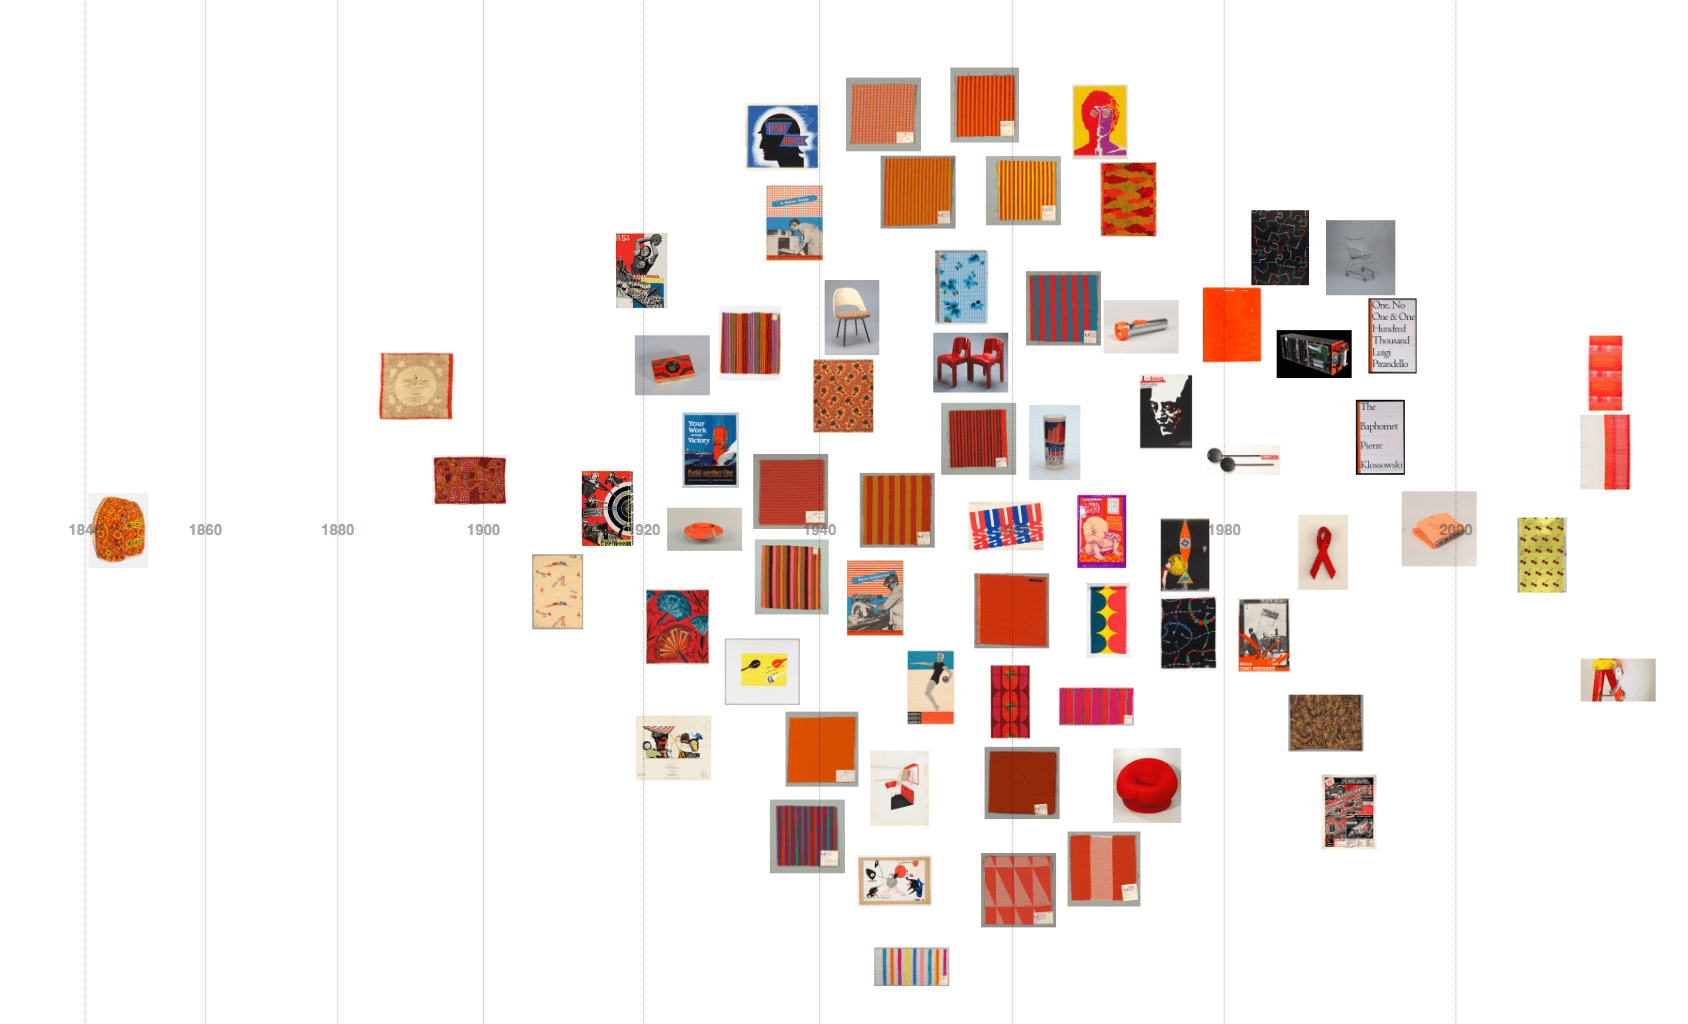 Olivia Vane. 2017. Visualisation of Cooper Hewitt Museum data by colour: orangered